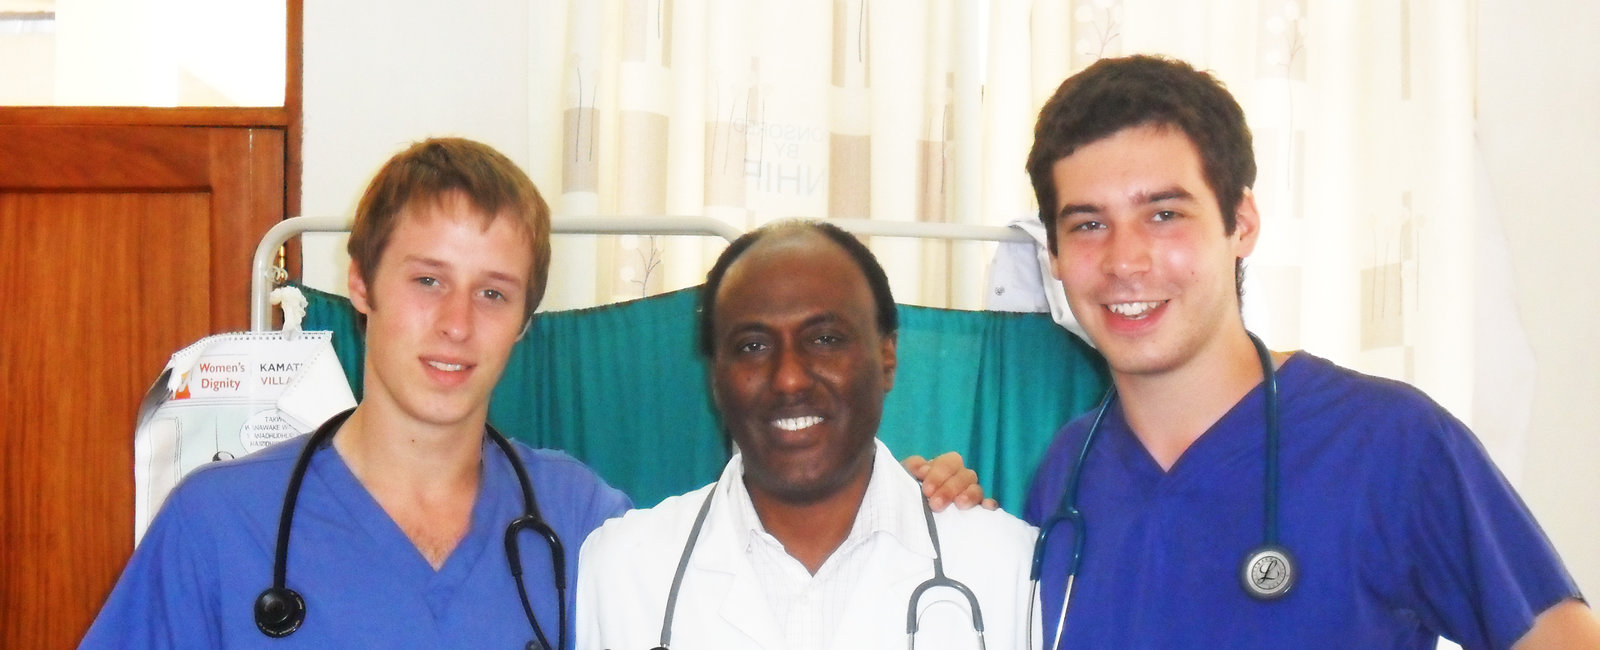 David Matthew - Medical Electives in Tanzania Dar es Salaam